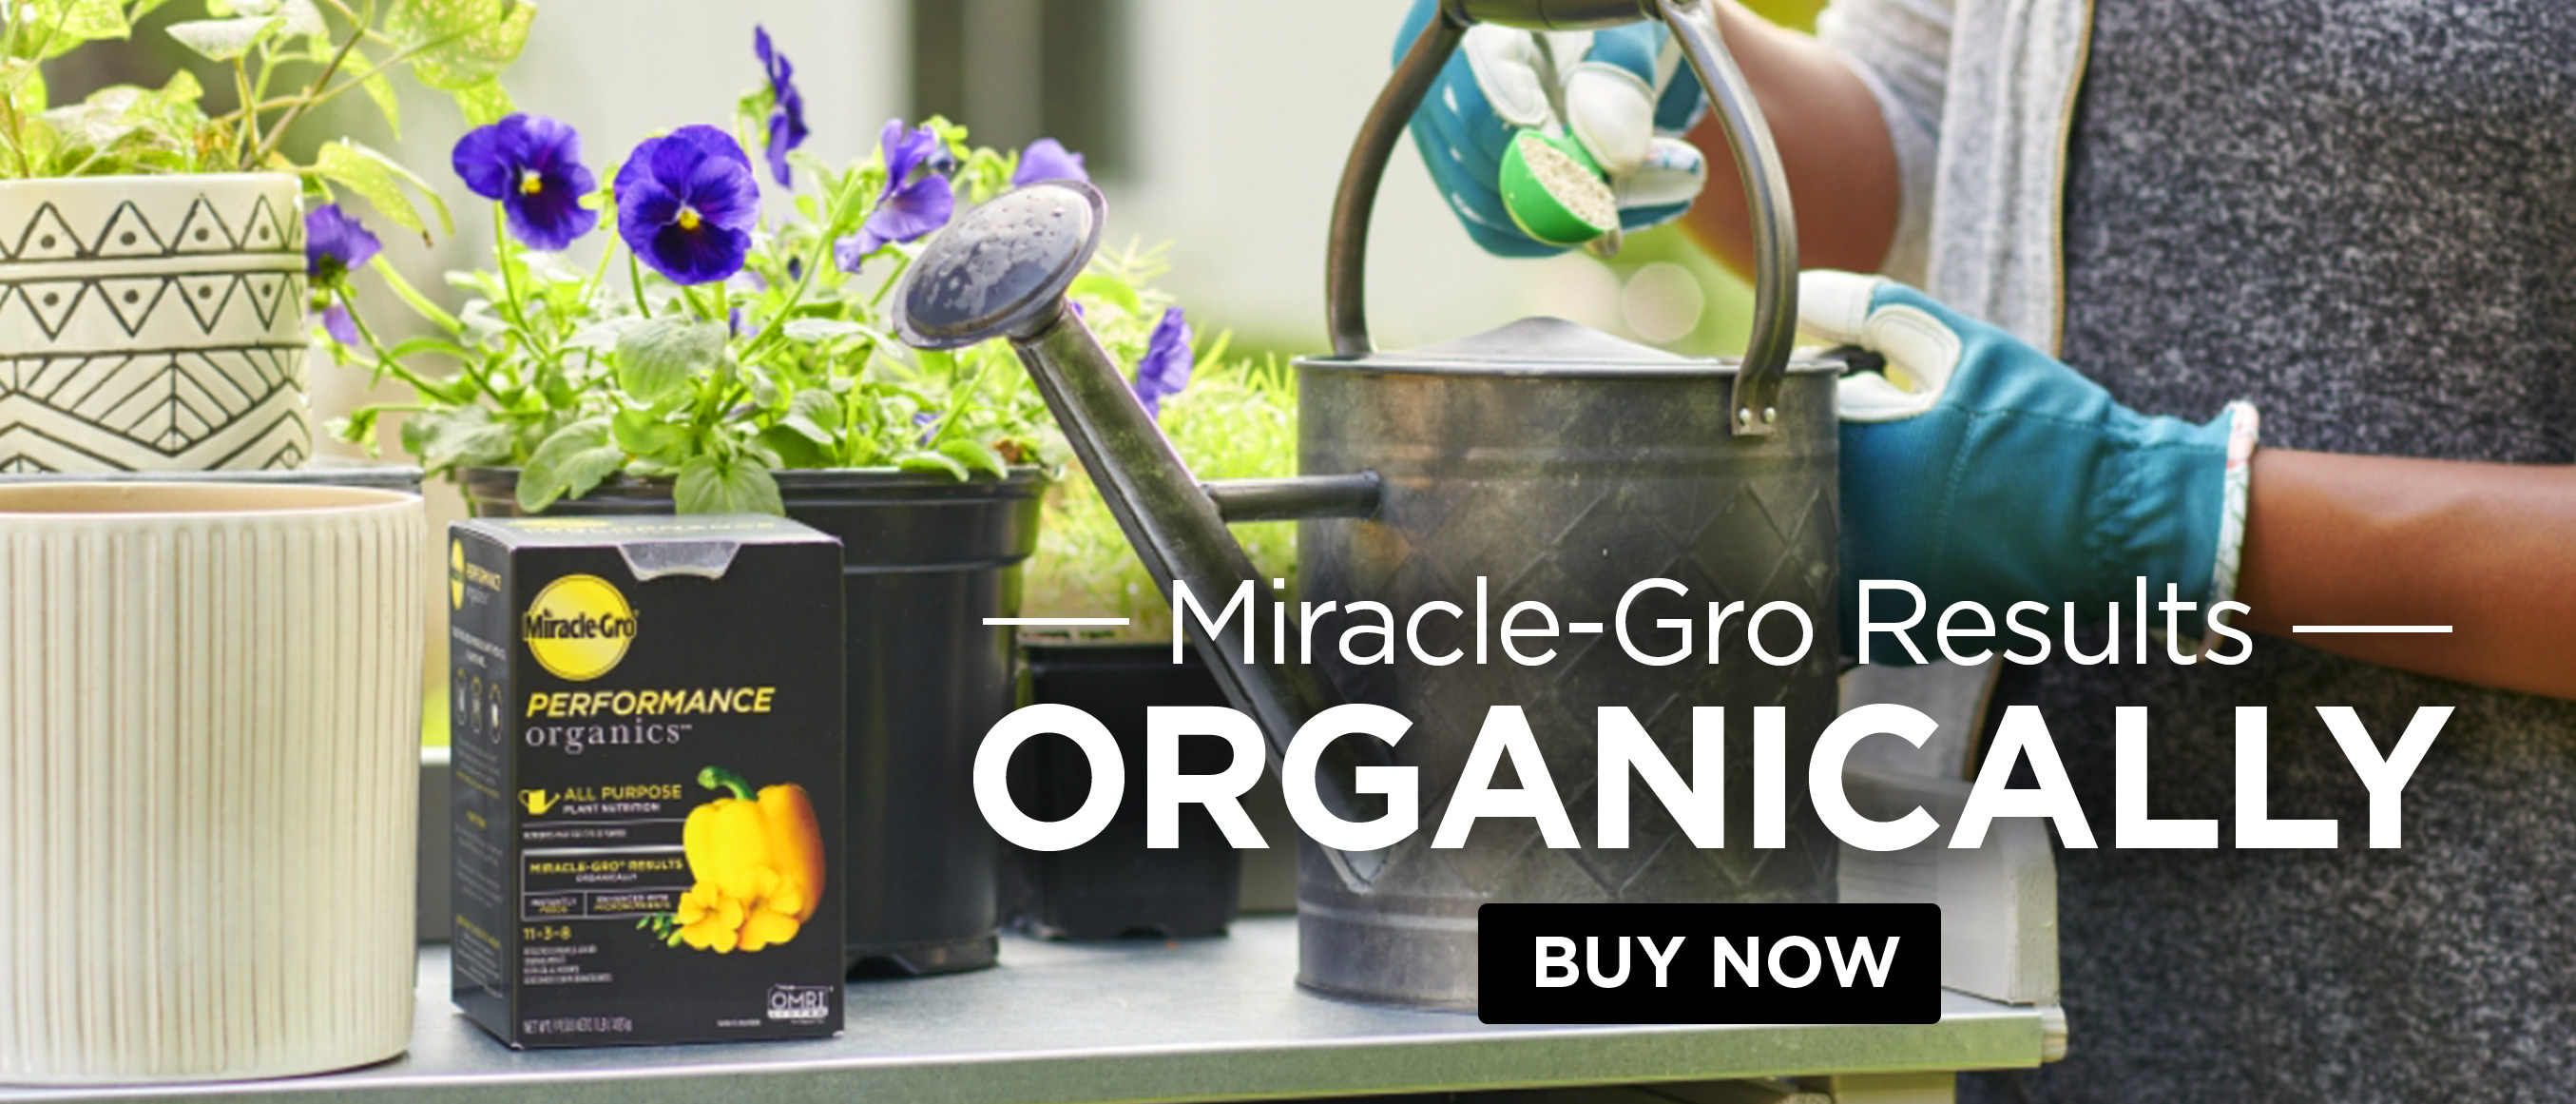 Miracle-Gro Results Organically